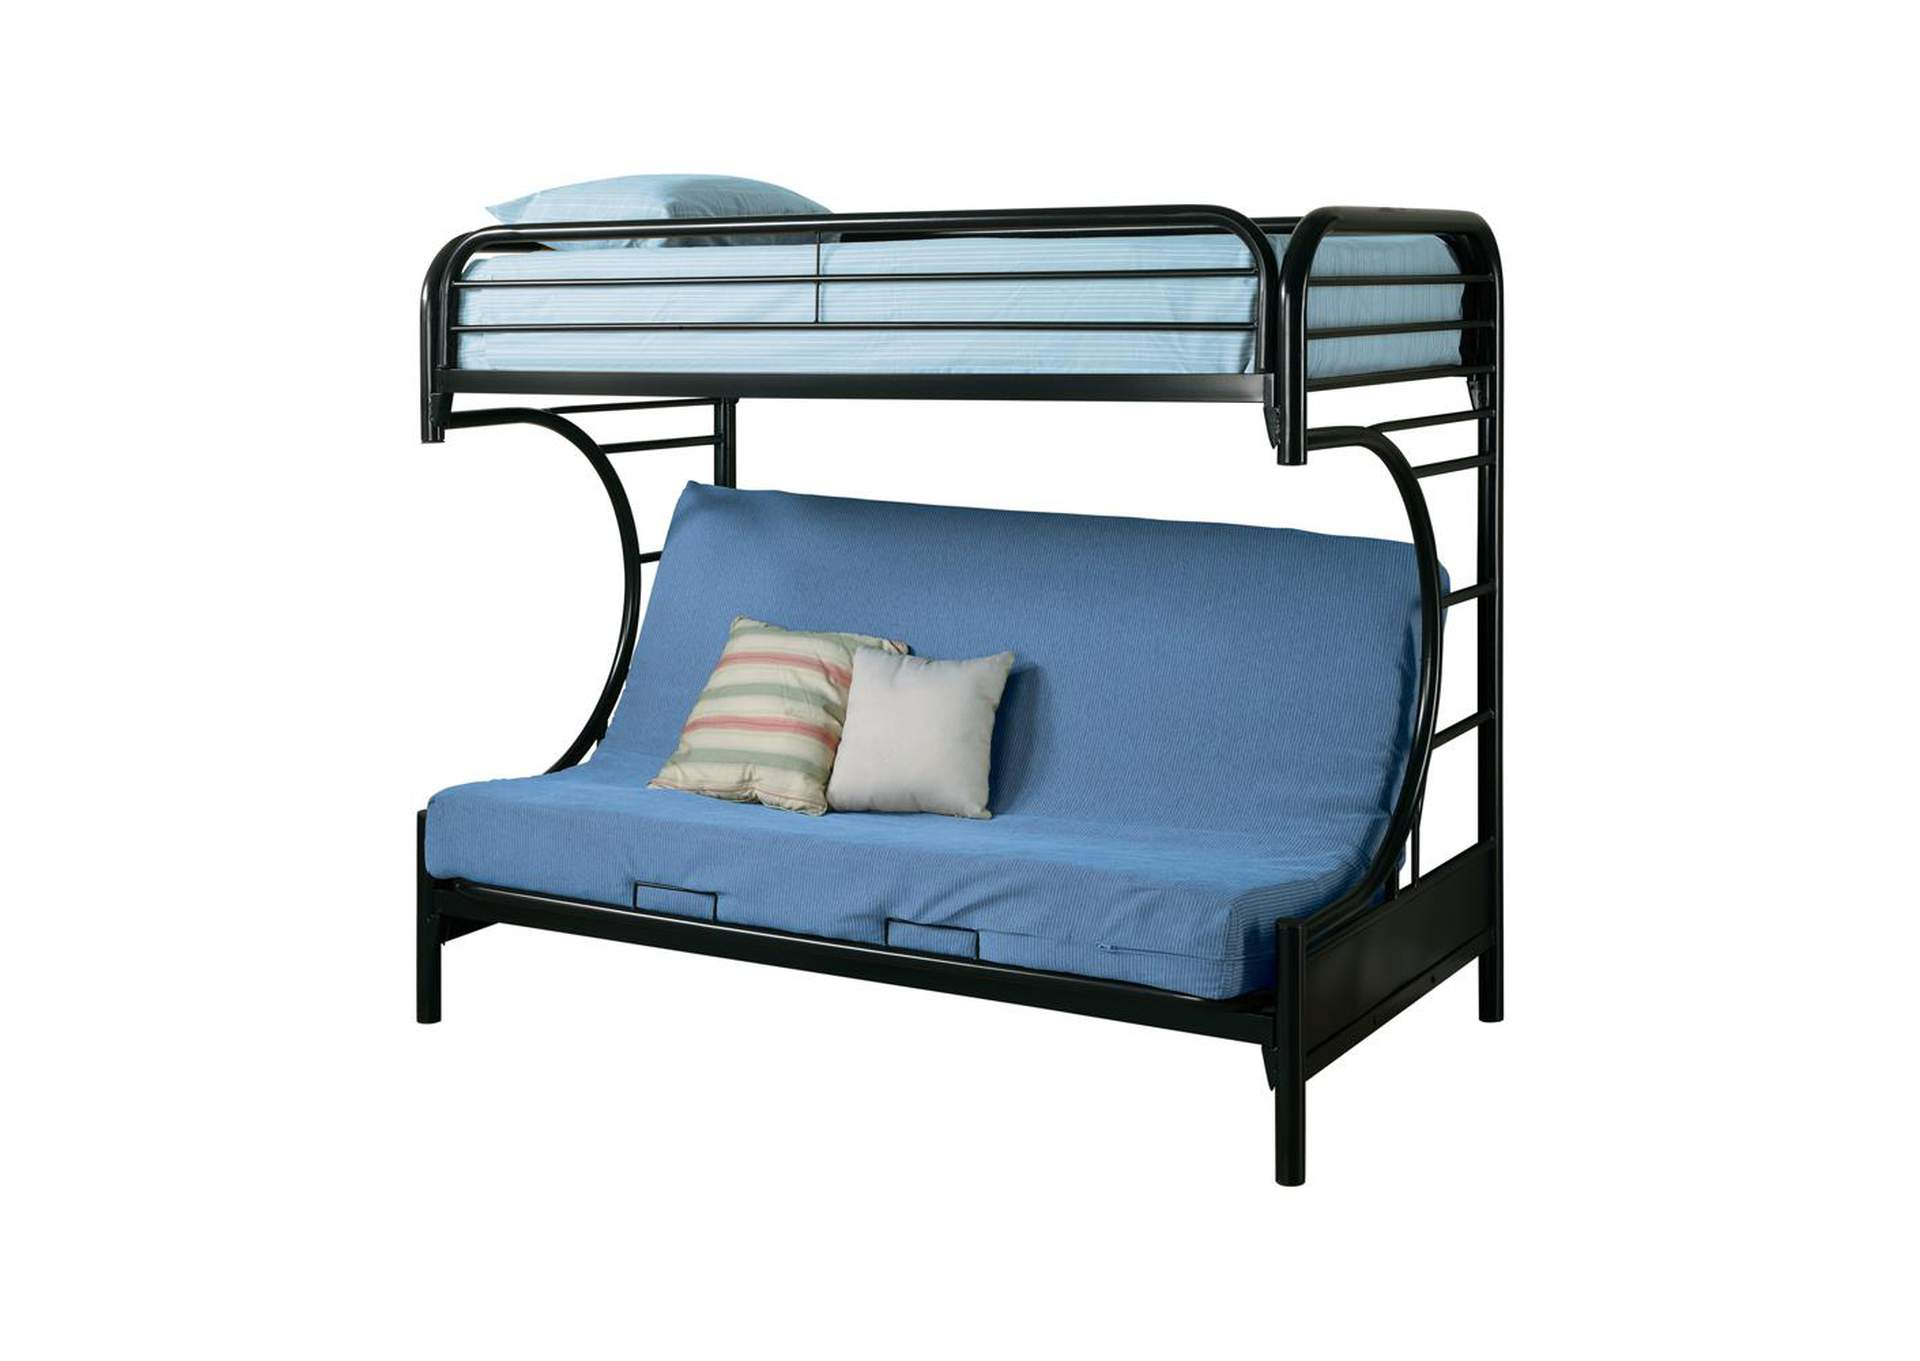 Horizon Contemporary Glossy Black Futon Bunk Bed,Coaster Furniture